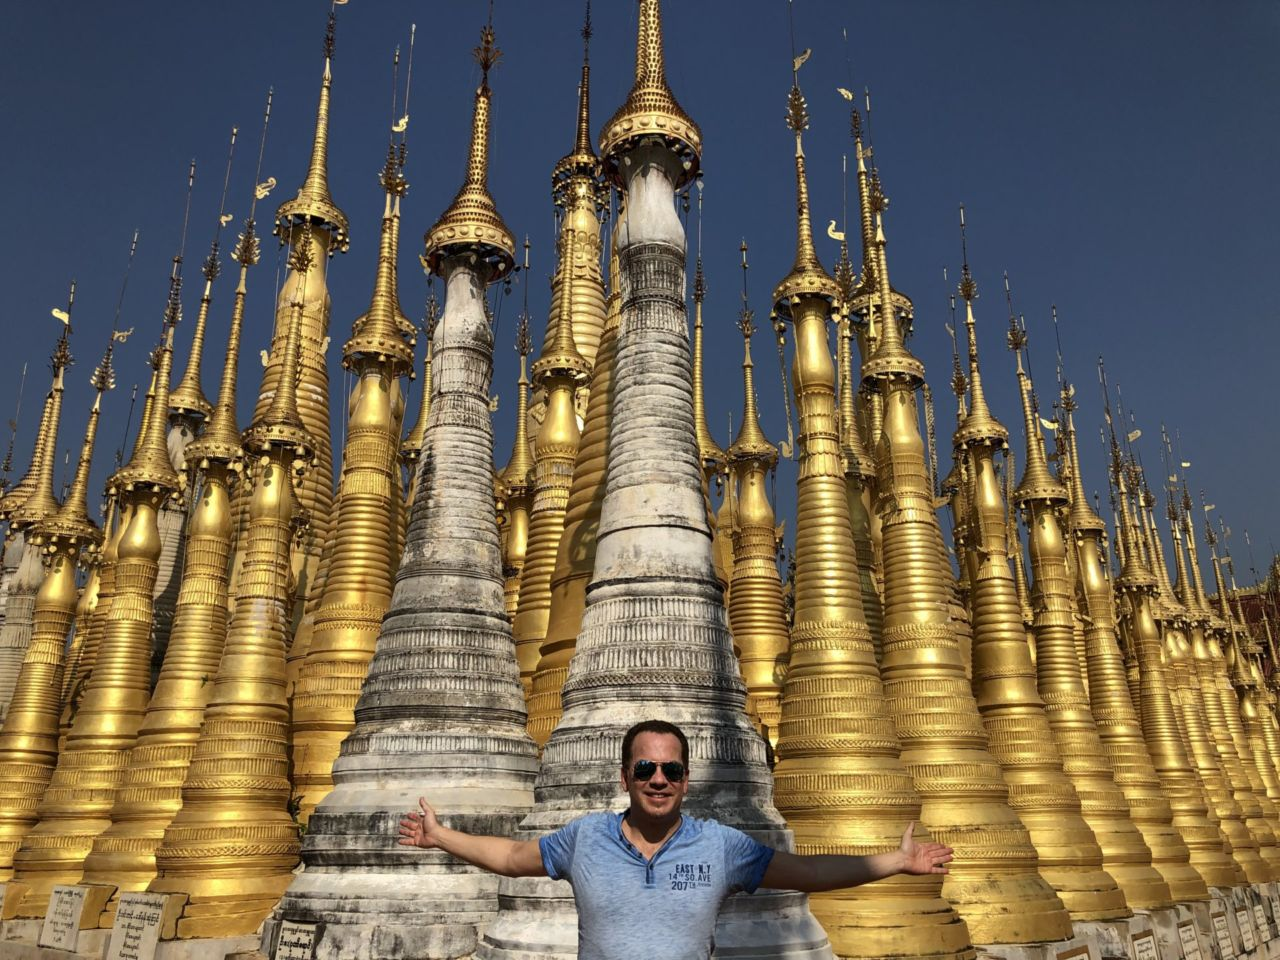 A person standing in front of Stupas